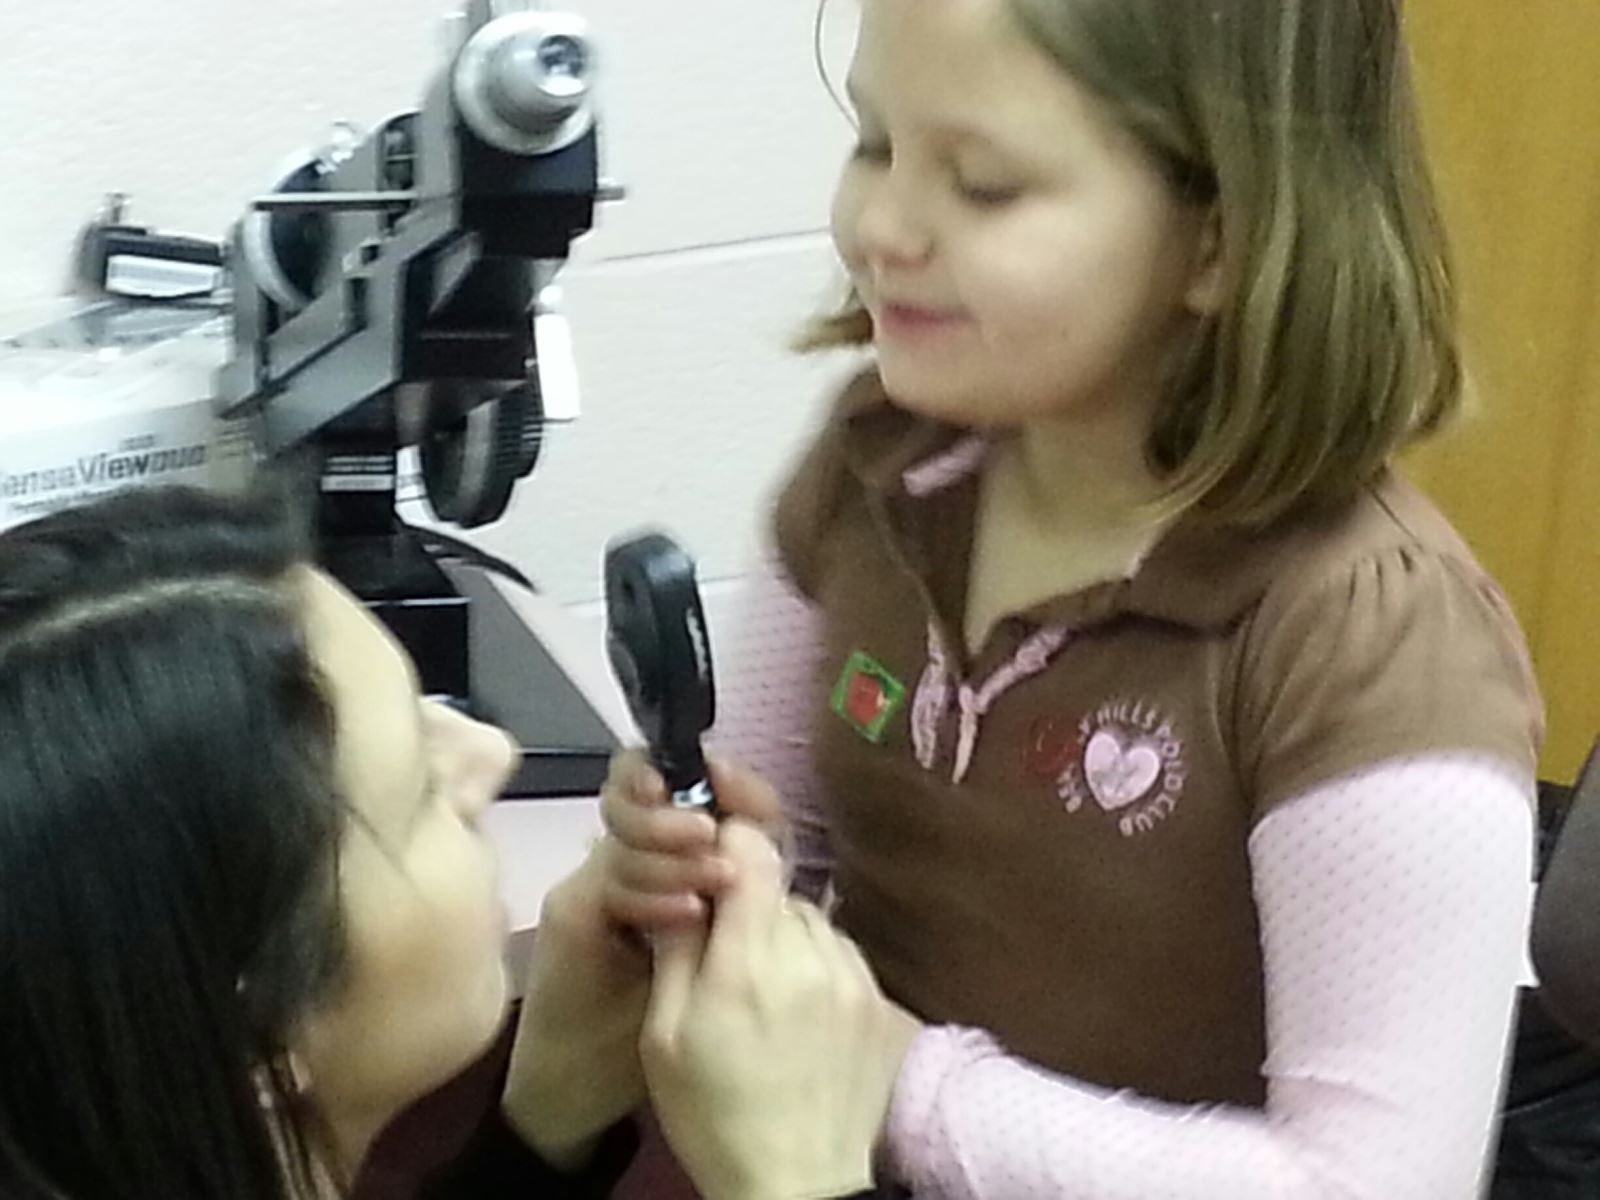 A female elementary student is holding an optical device with the opthalmologist during a low vision examination at KSB.